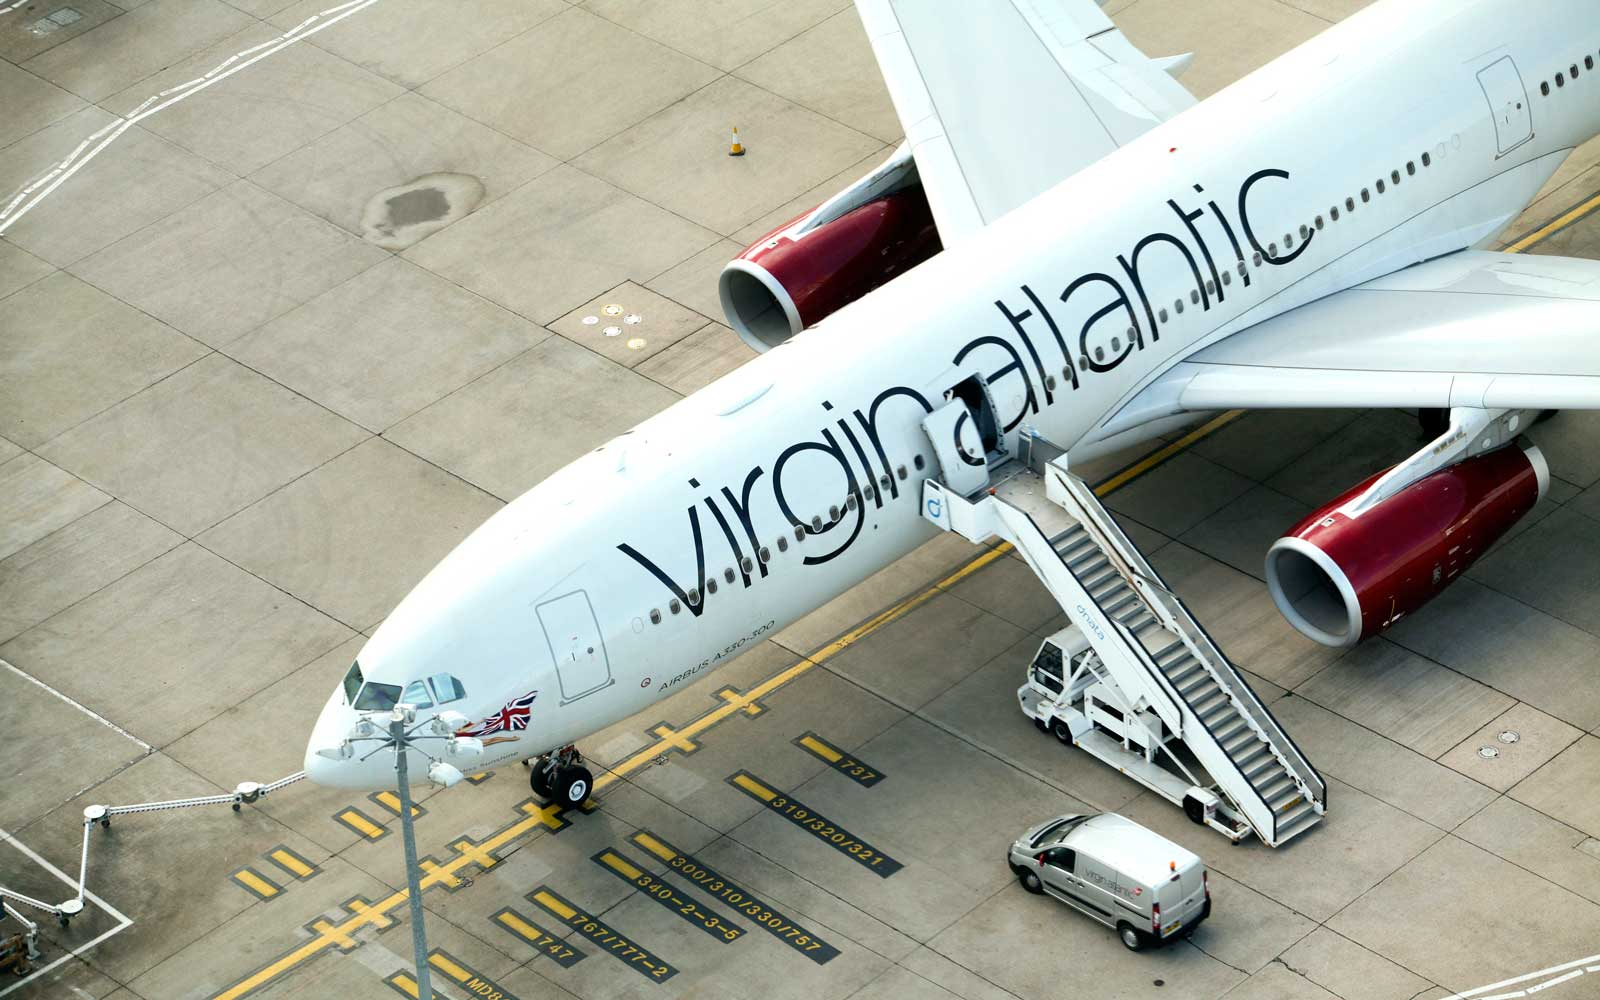 Virgin Atlantic Flying Club Loyalty Program